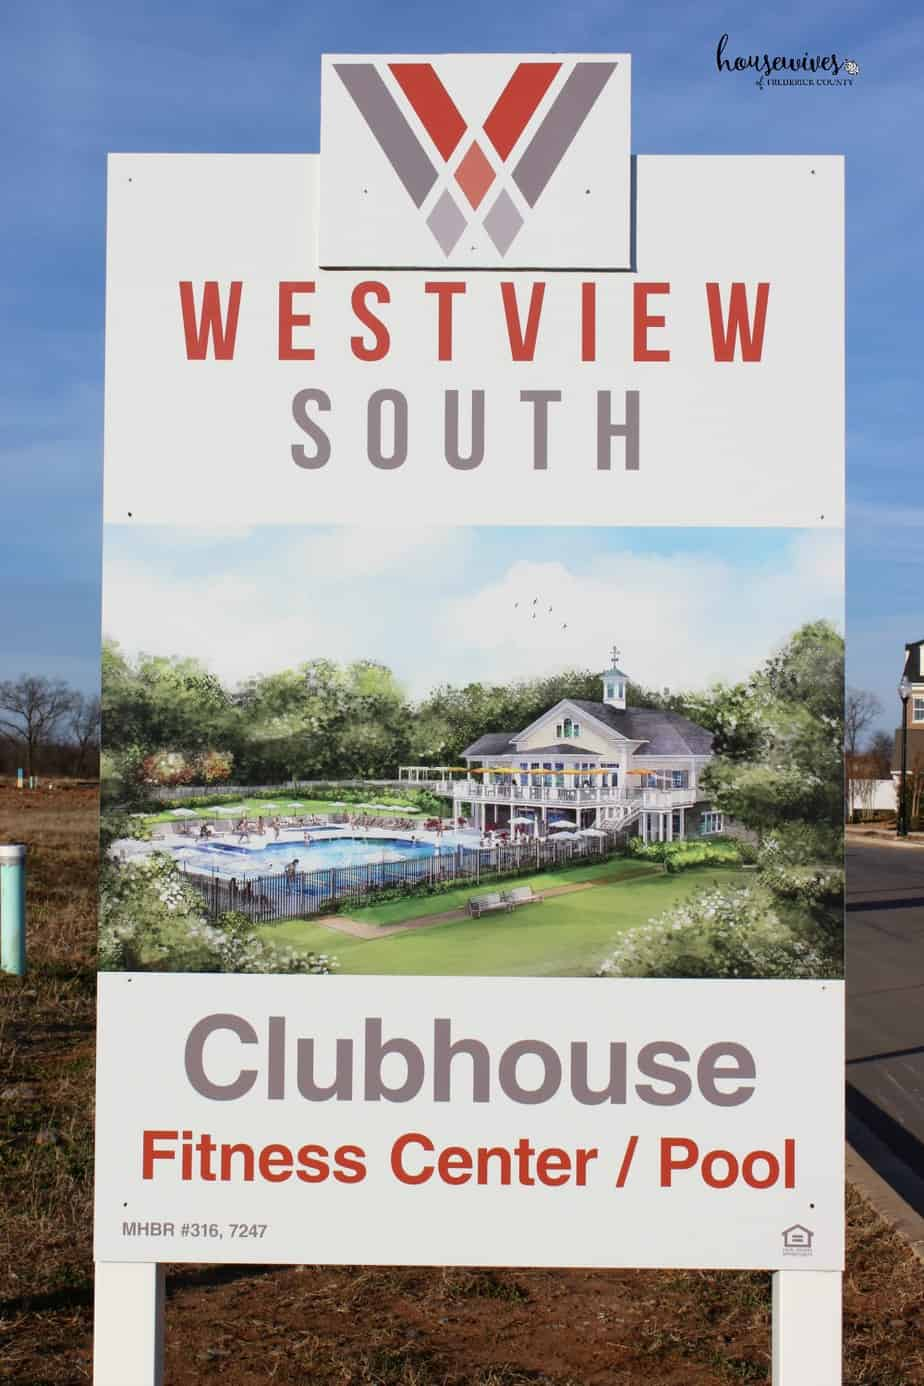 Lennar Westview South: Clubhouse, Fitness Center & Pool